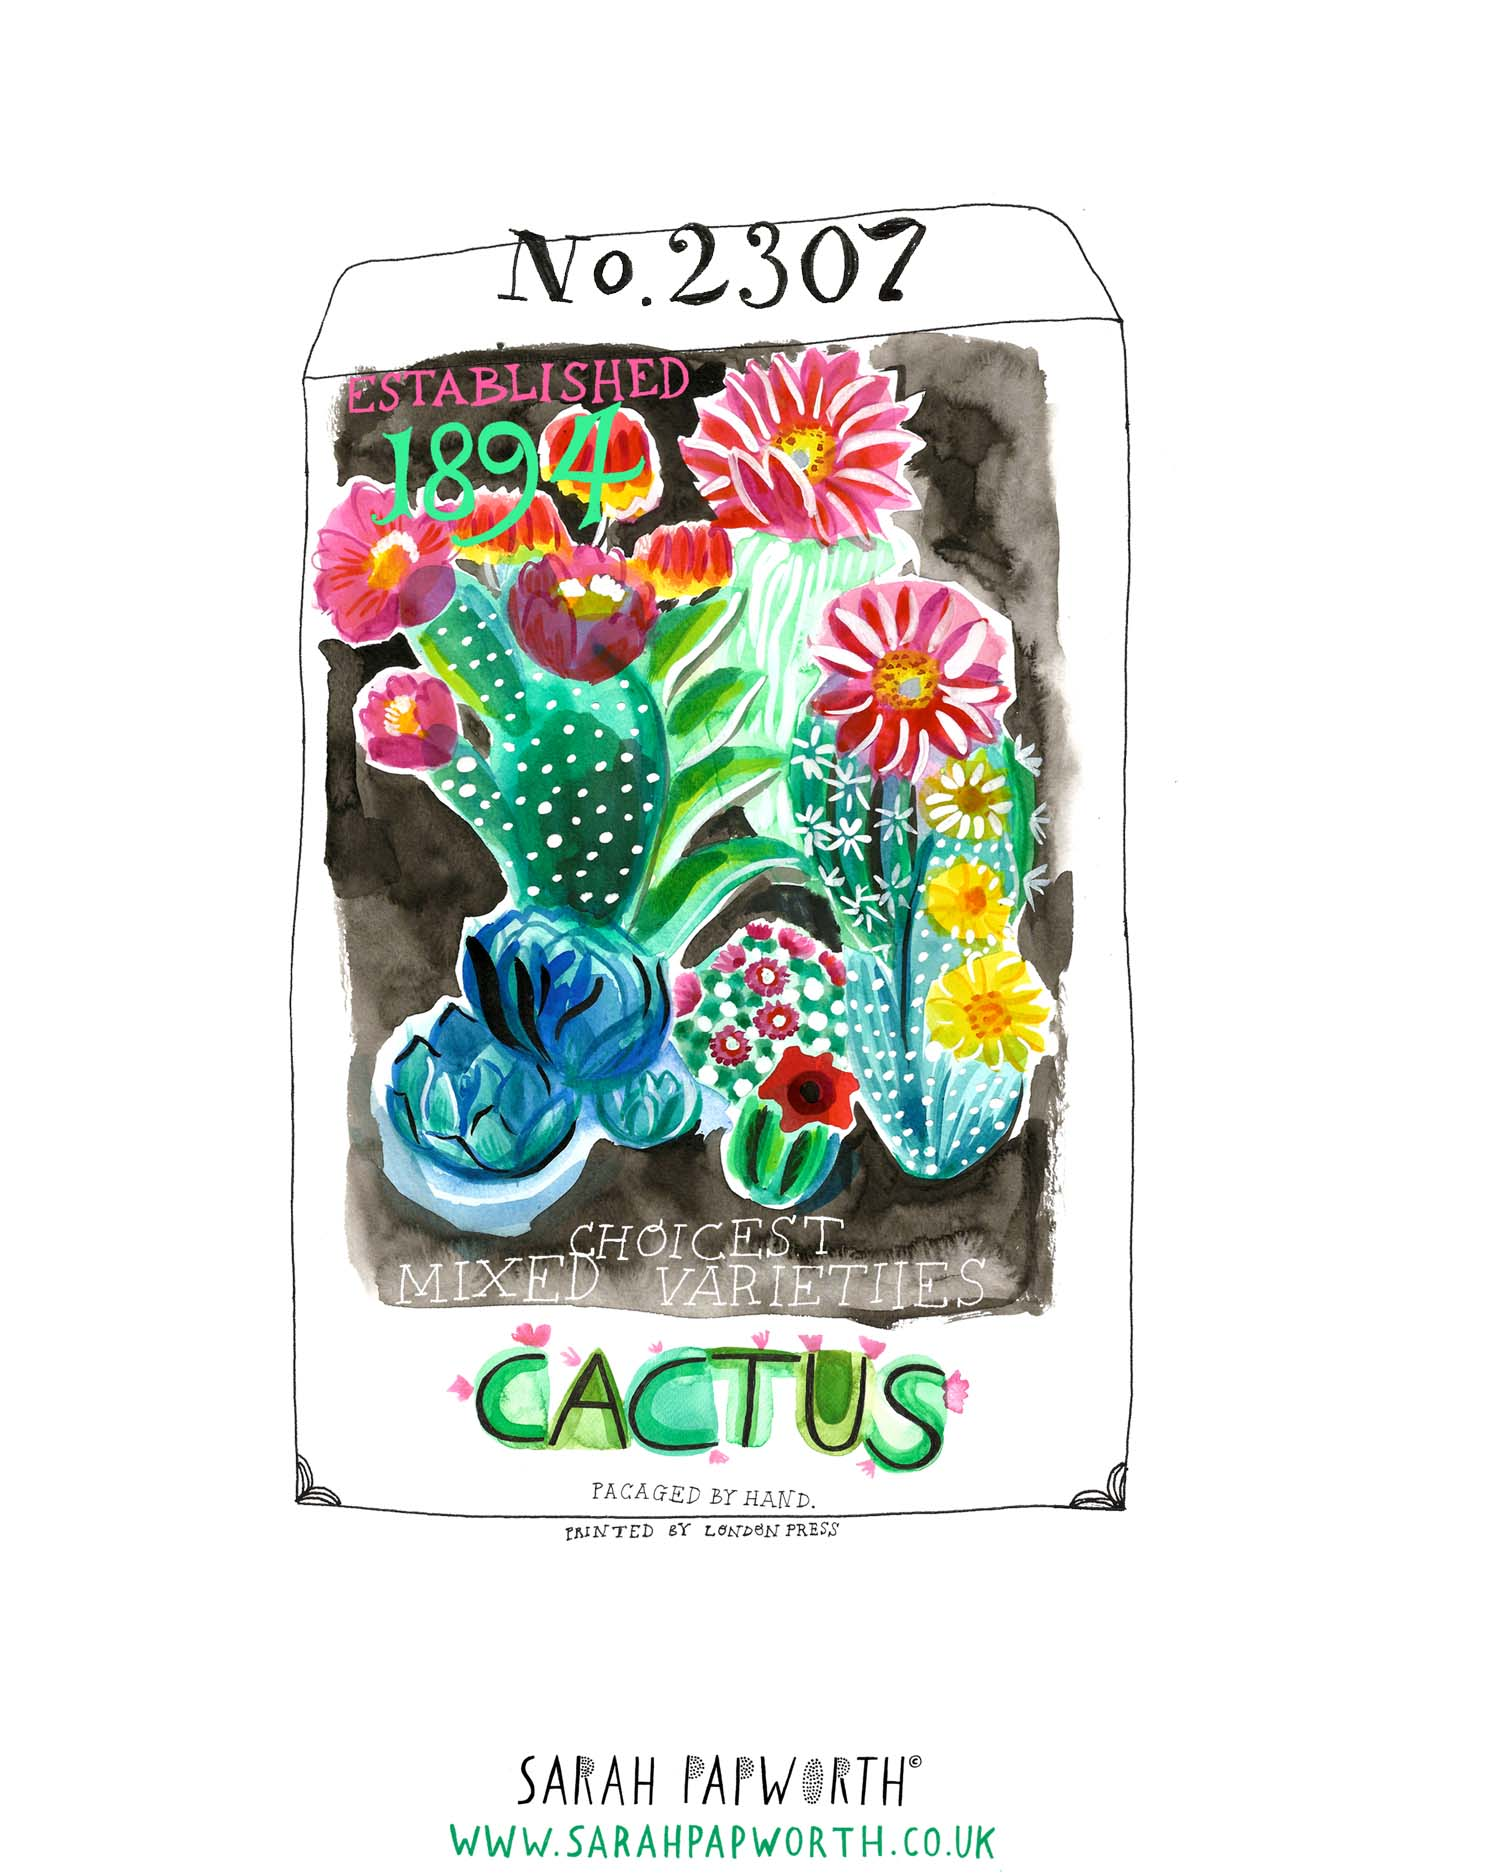 cacti illustration food watercolour editorial by sarah papworth.jpg